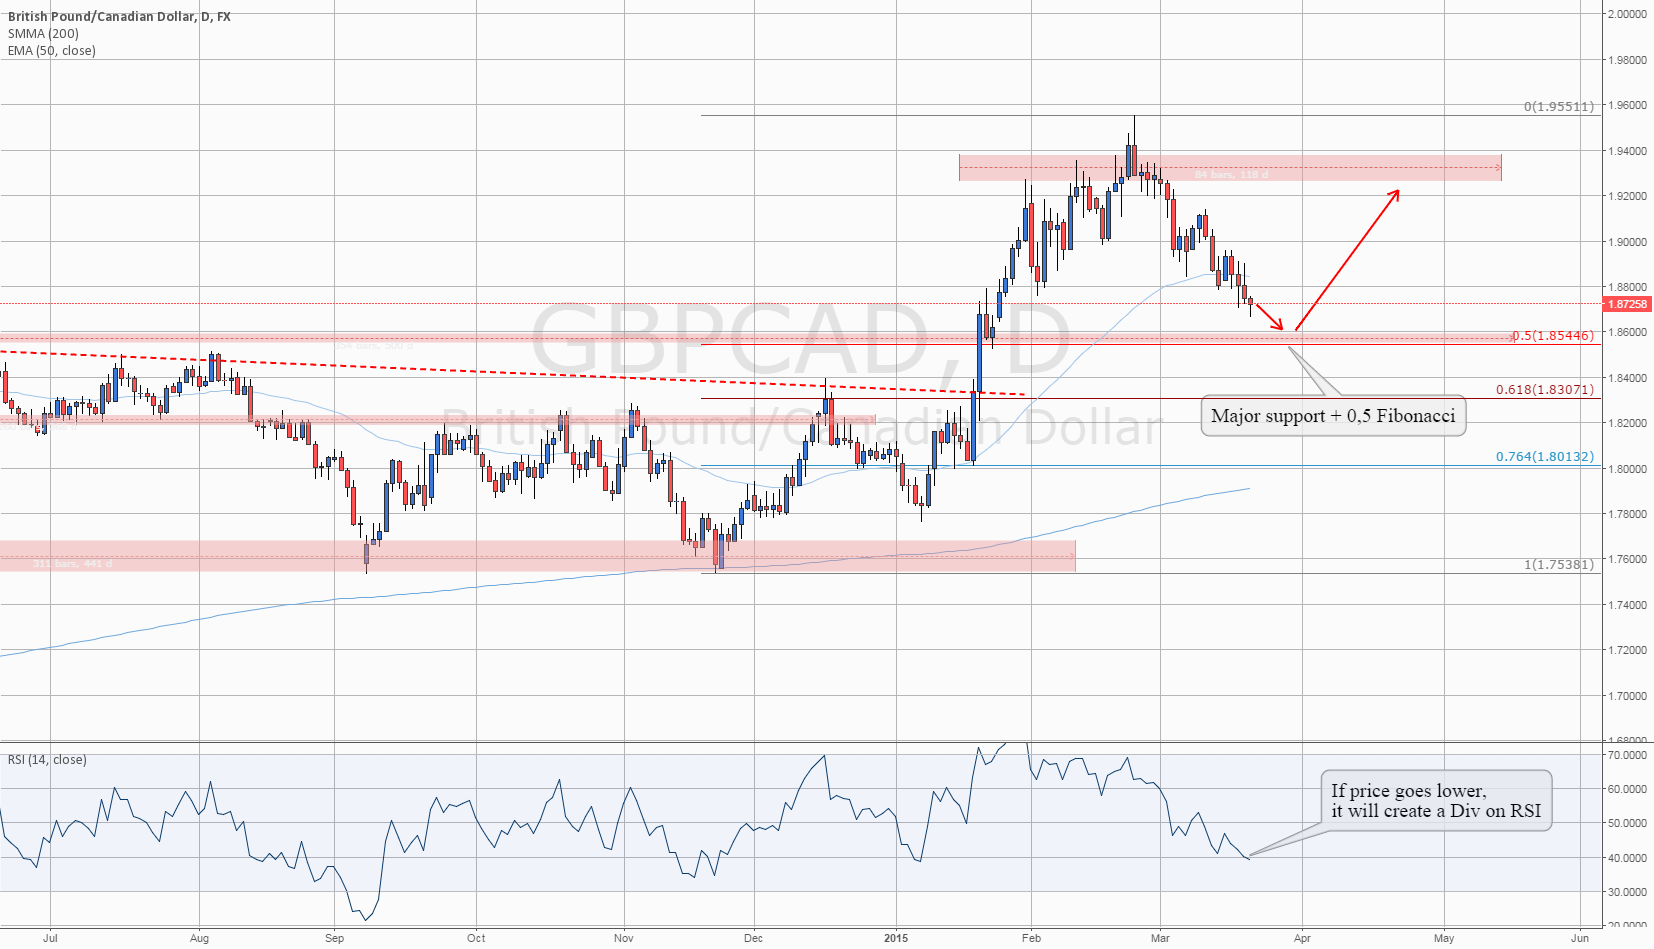 Level To Watch: #GBPCAD Heading to Major support and 0.5 Fibo